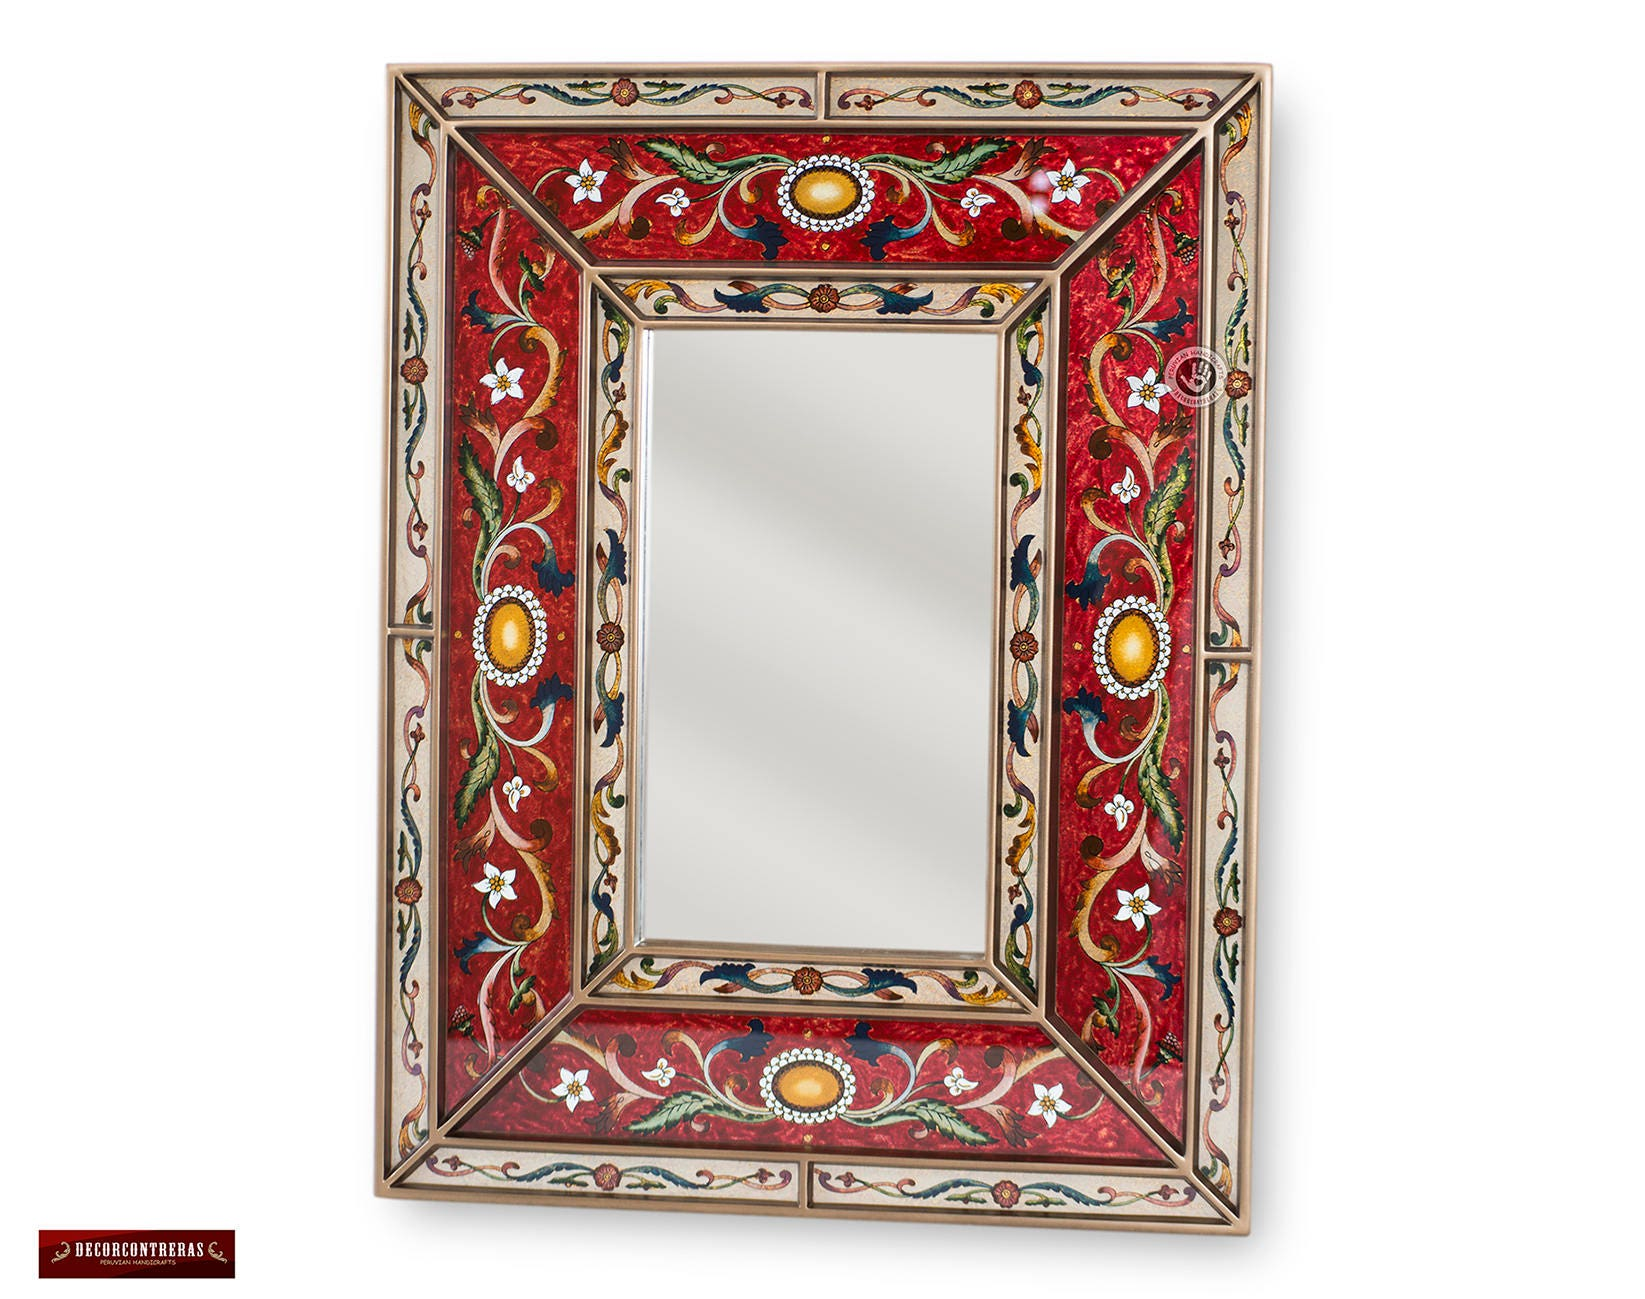 Peruvian Red Decorative Mirror Arts Crafts Large Mirror For Wall Vanity Mirror Hand Painted Glass Wood Rectangular Wall Mirrors